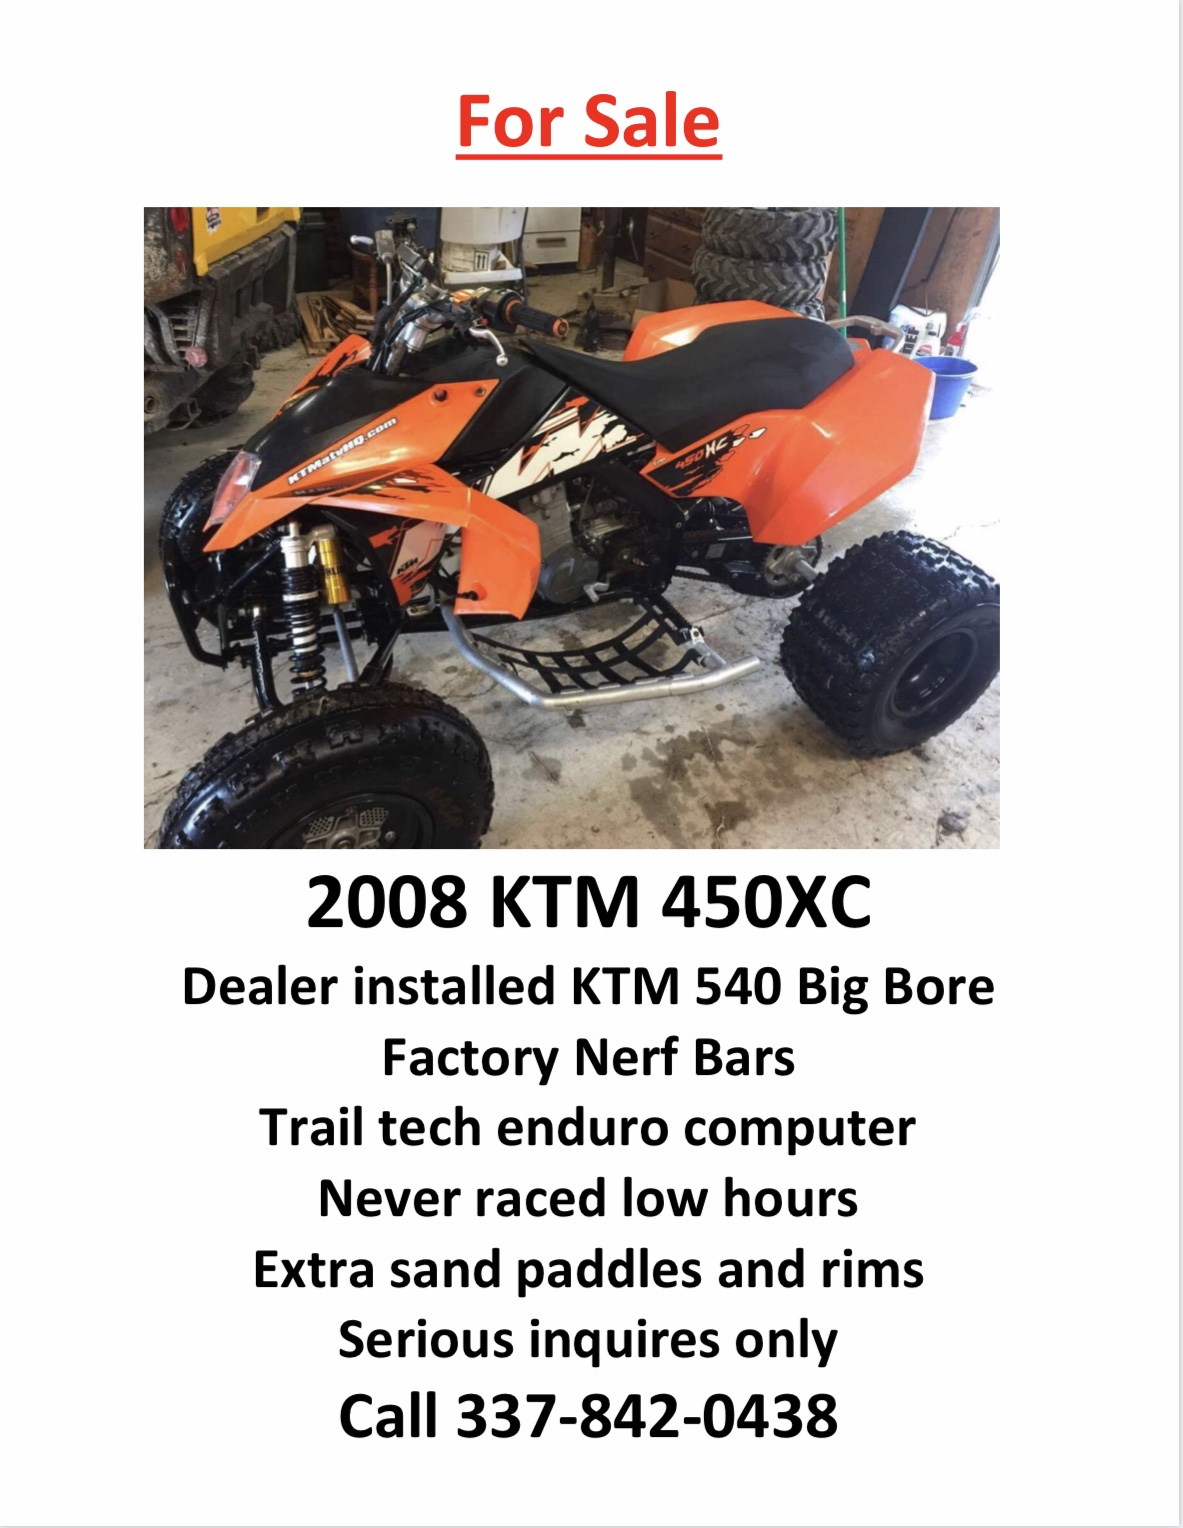 2008 xc for sale!!-7132ad36-722d-4537-828b-980aac6e0da5.jpeg